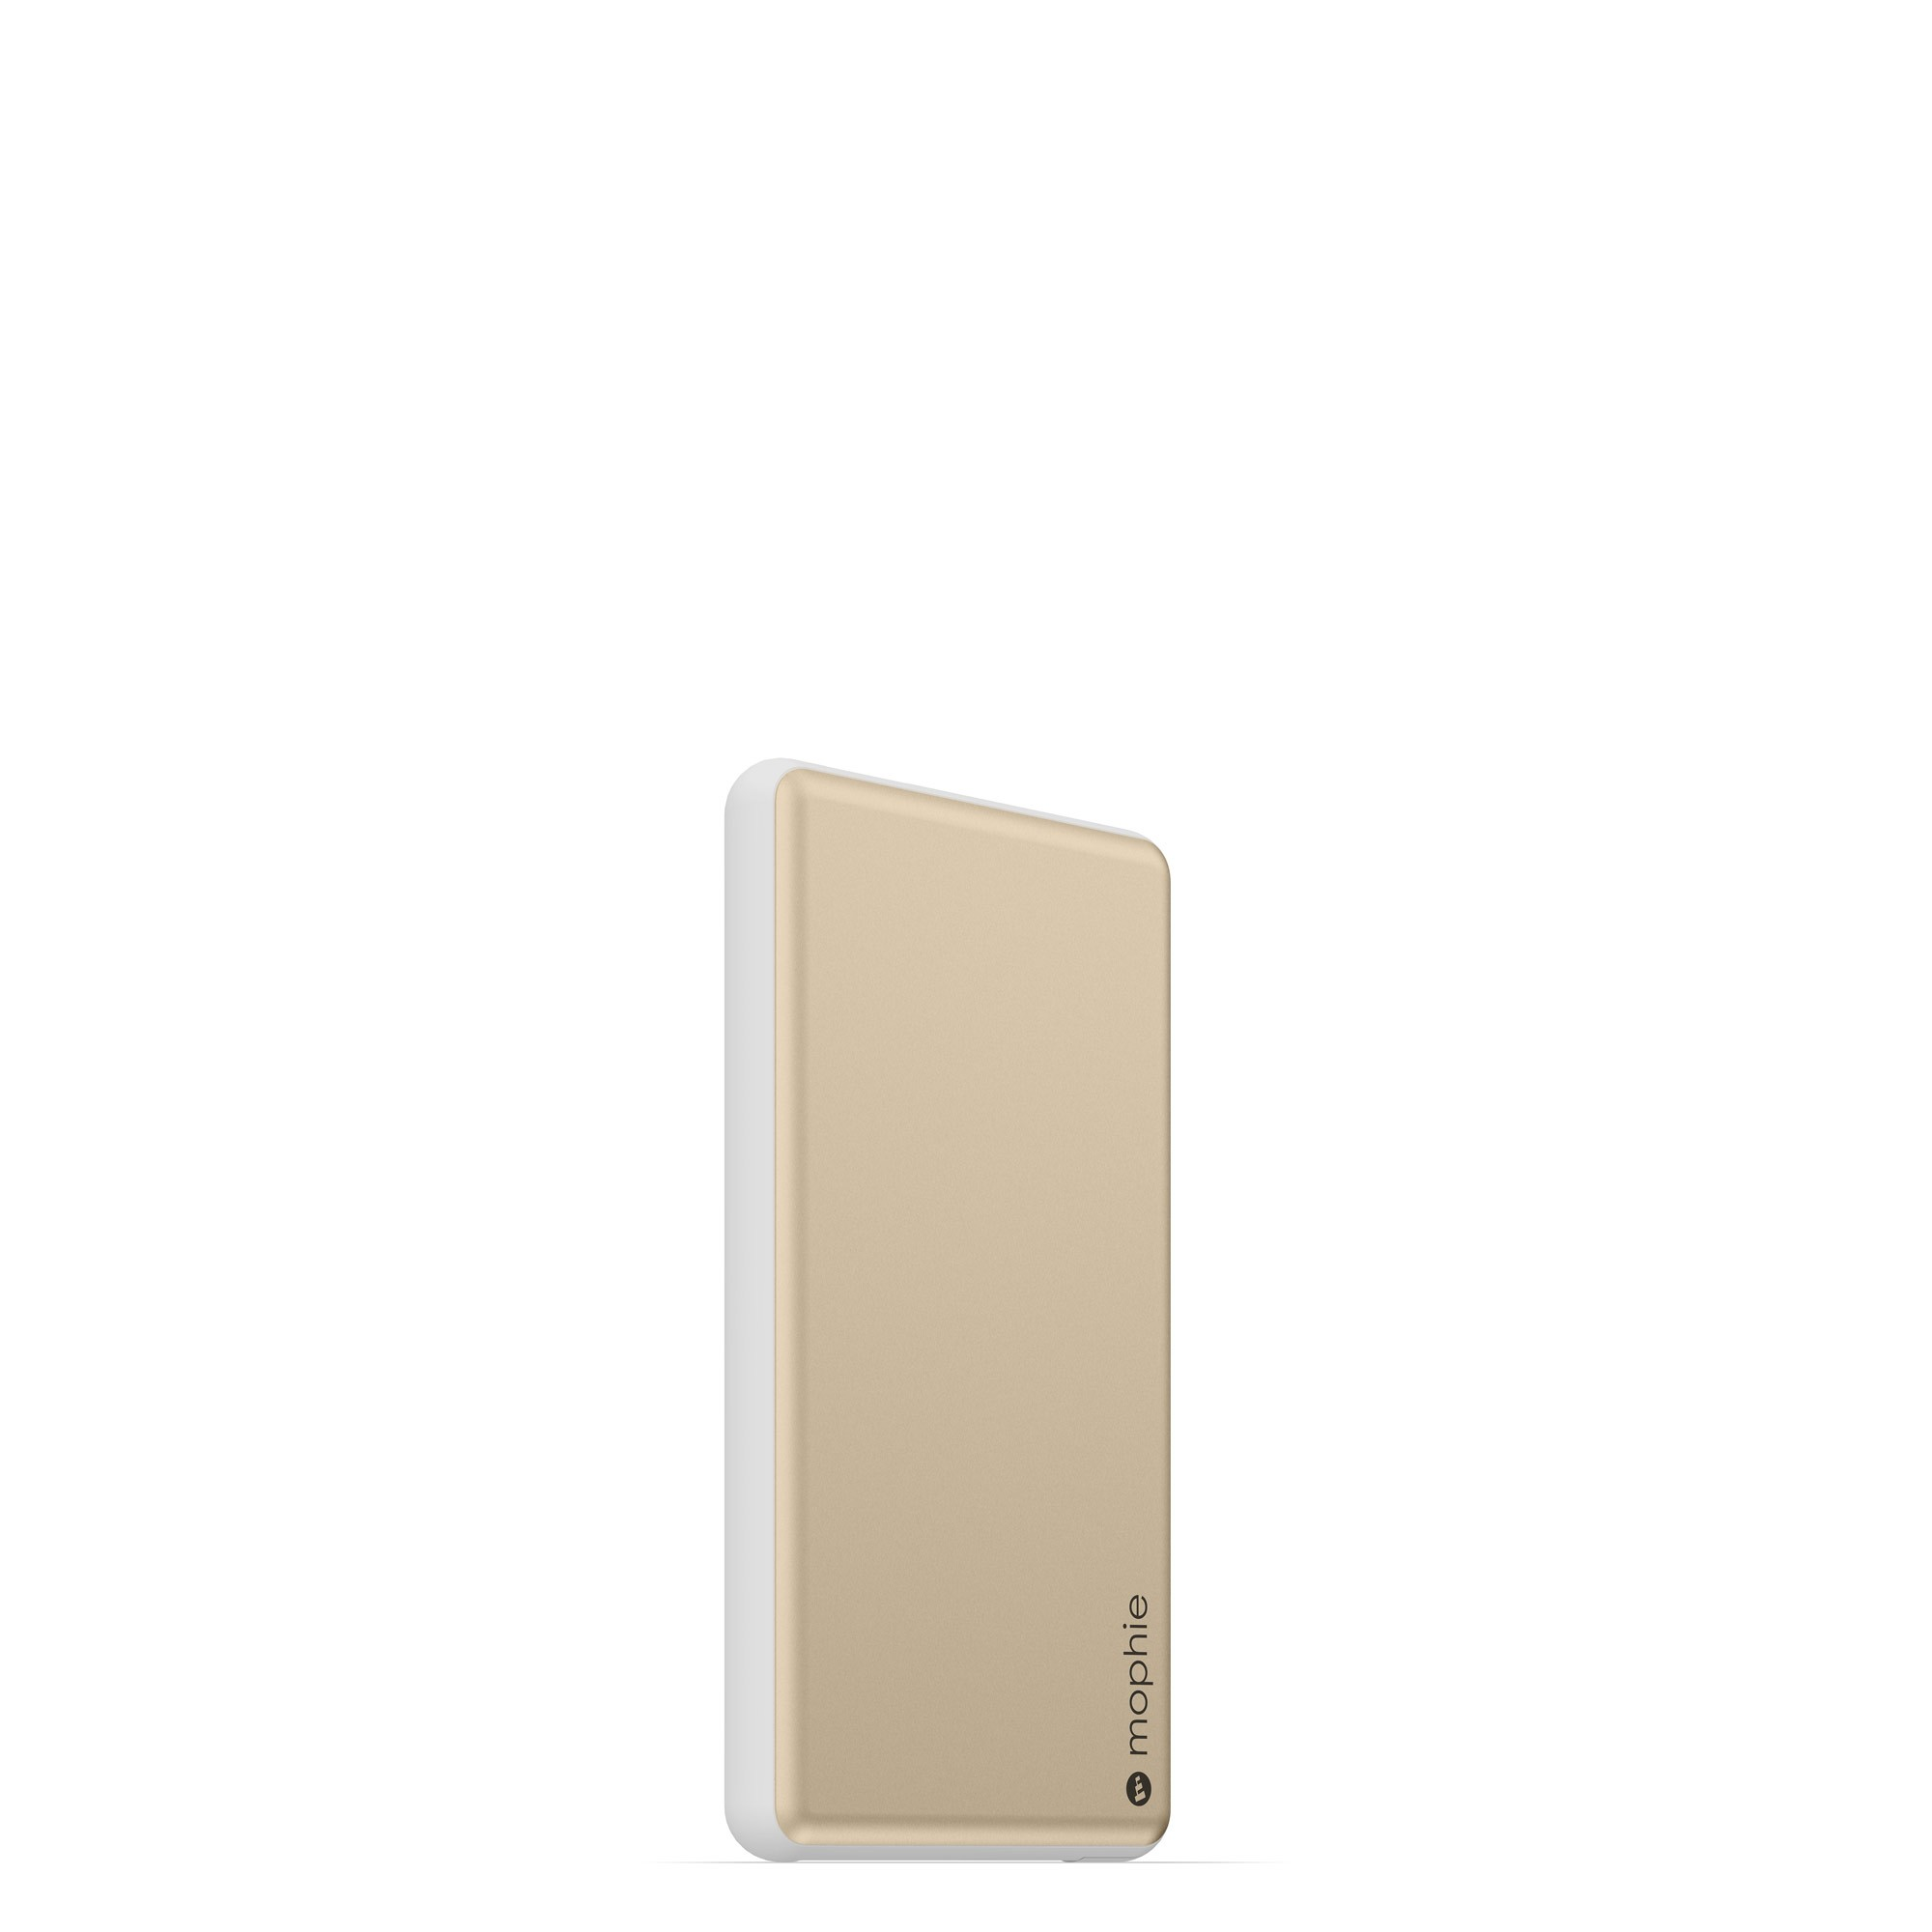 Pin dự phòng Mophie Powerstation Plus Switch-tip 6.000mAh